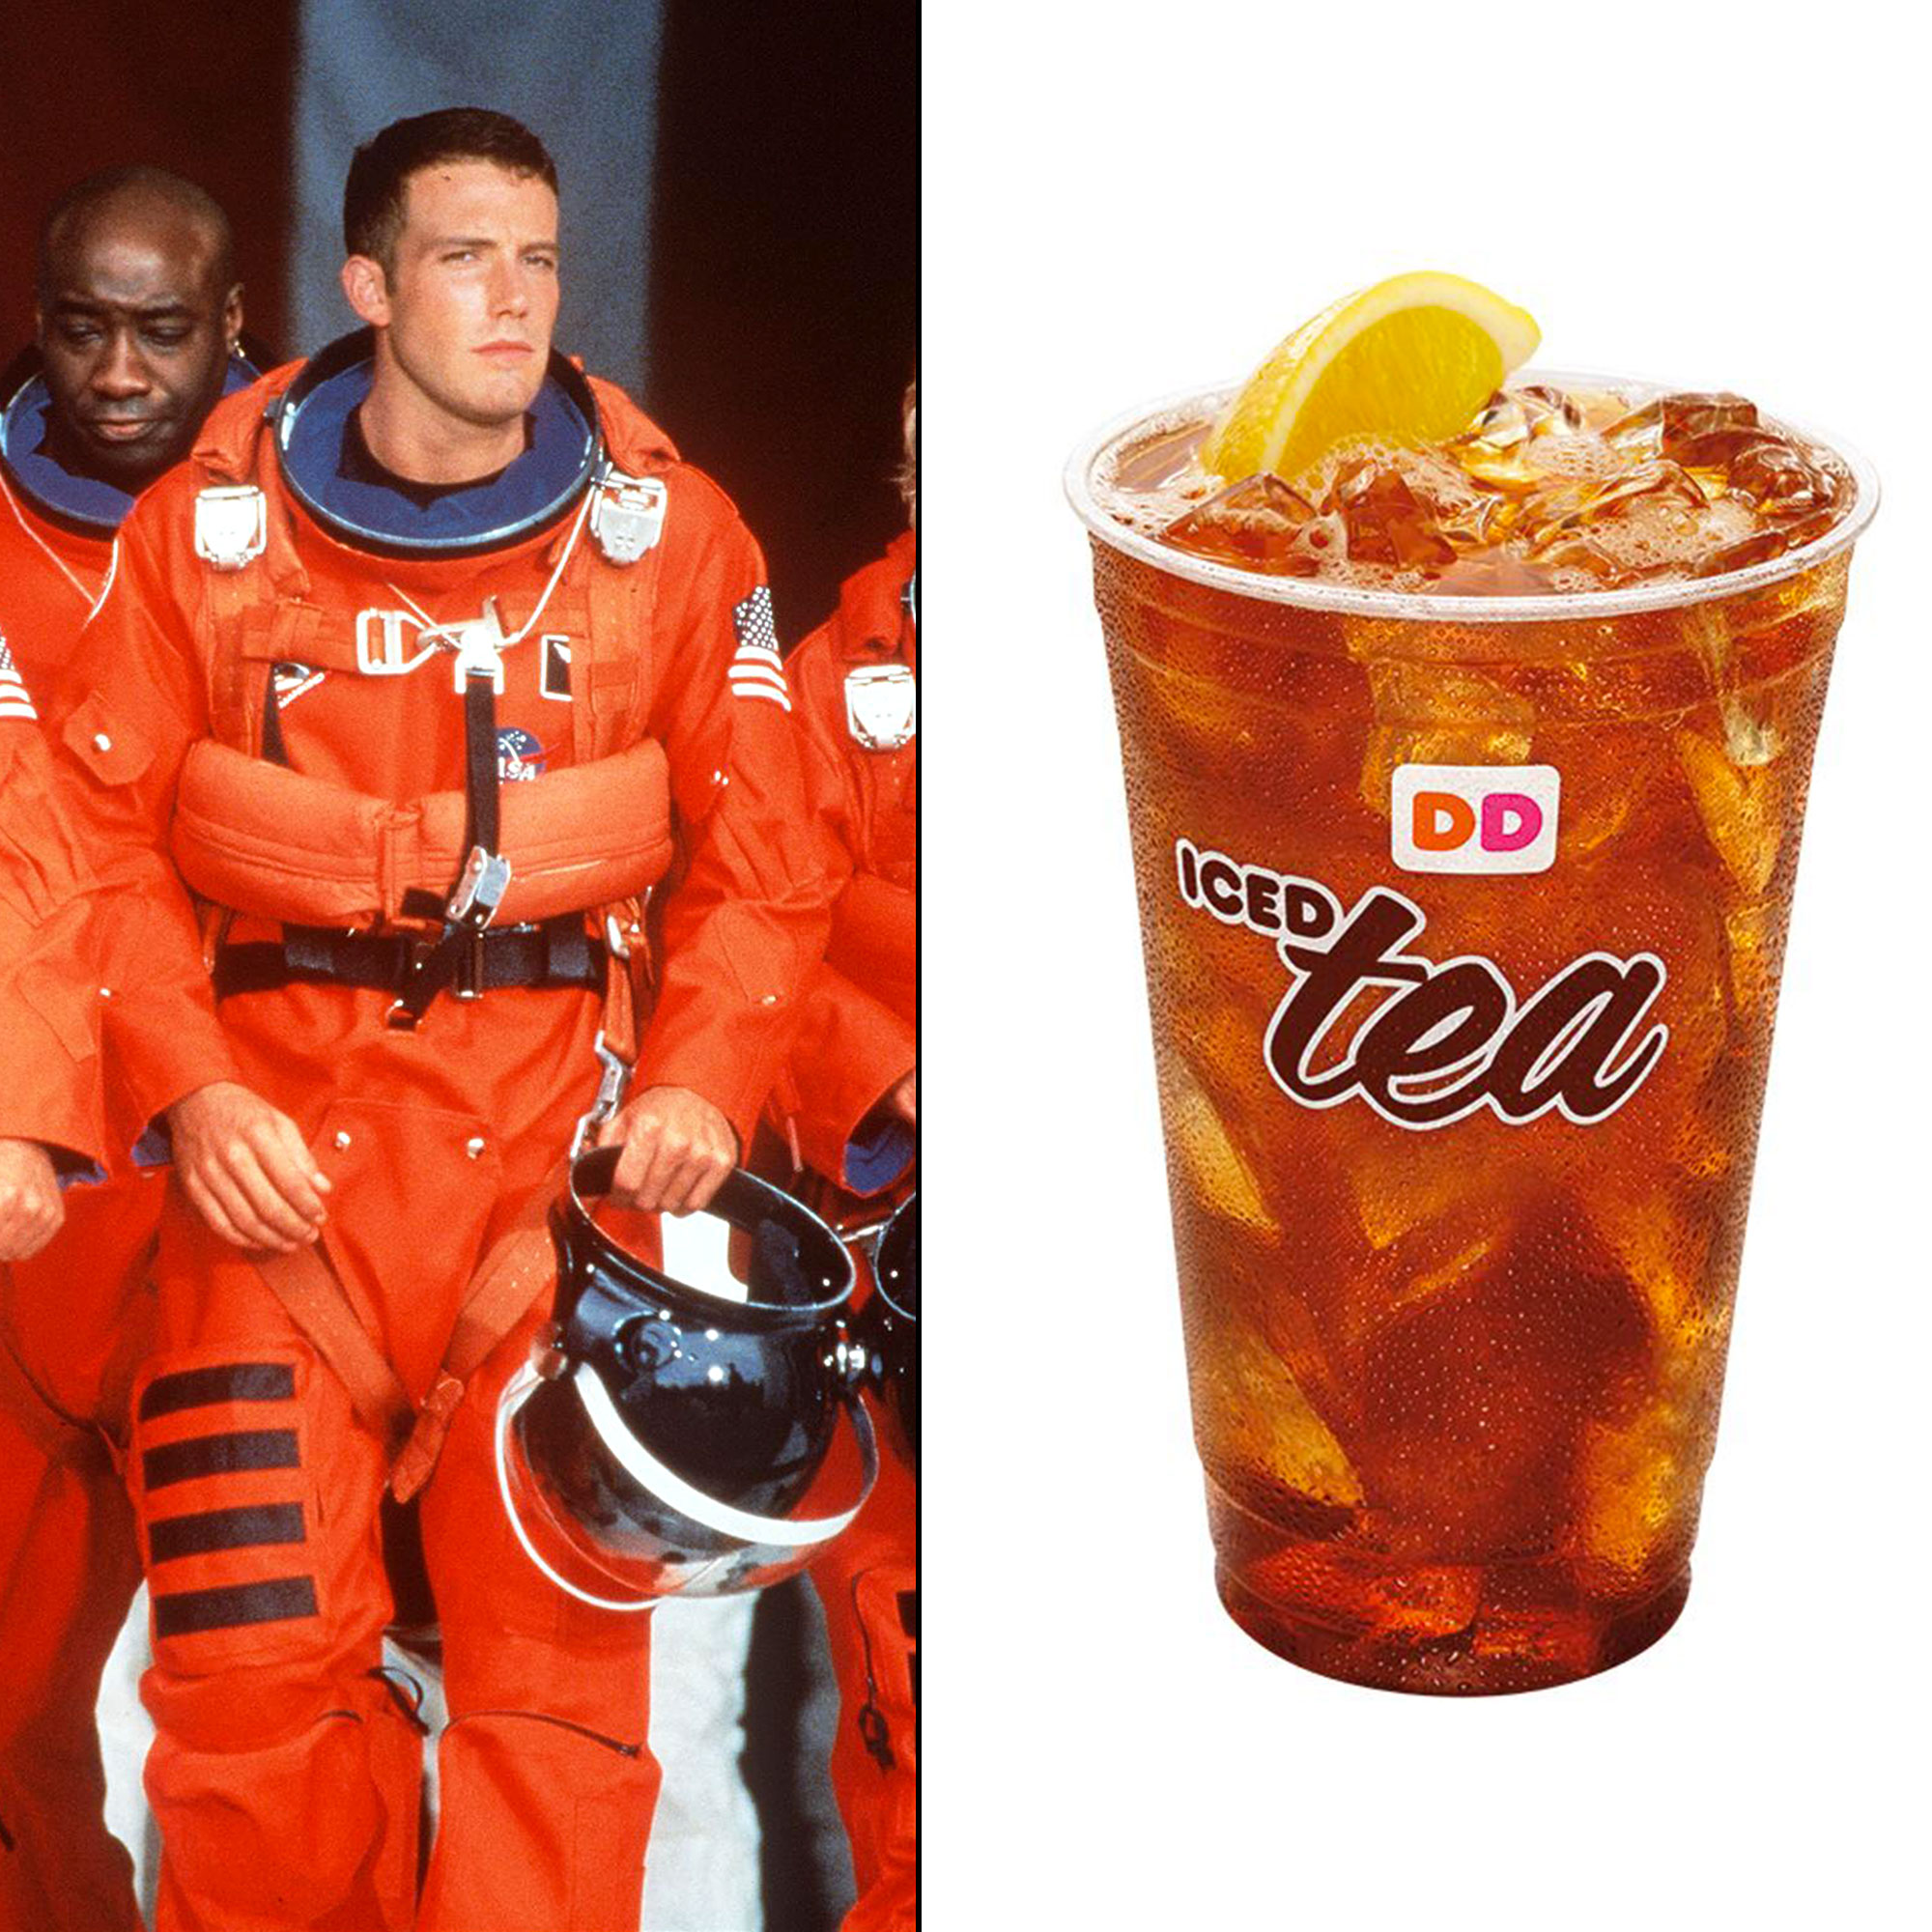 """Celebs Who Have Looked Like Food - The Gone Girl star has not been shy about his love for Dunkin' (formerly Dunkin' Donuts), boasting that he eats it """"every day,"""" and in April 2019 a Twitter user named Amelia Wedemeyer proved via a LOL-worthy Twitter thread that the Boston-bred actor often dresses in outfits that resemble beverages from the Massachusetts-based brand. Case in point: One tweet in Wedemeyer's thread compared a spacesuit-clad A.J. Frost ( Affleck 's character in Armageddon ) to a similarly hued iced tea from Dunkin'."""